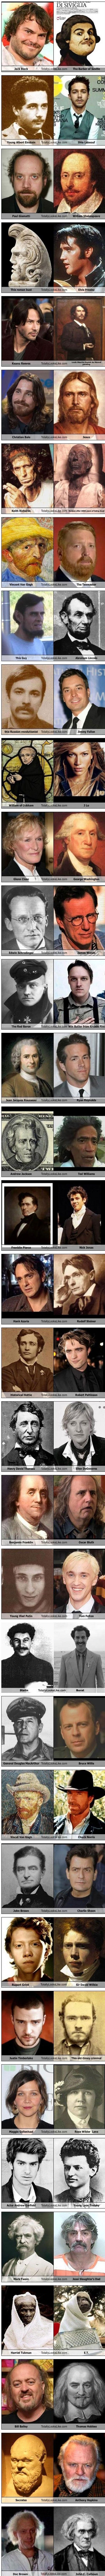 Funny celebrities historical look-alikes